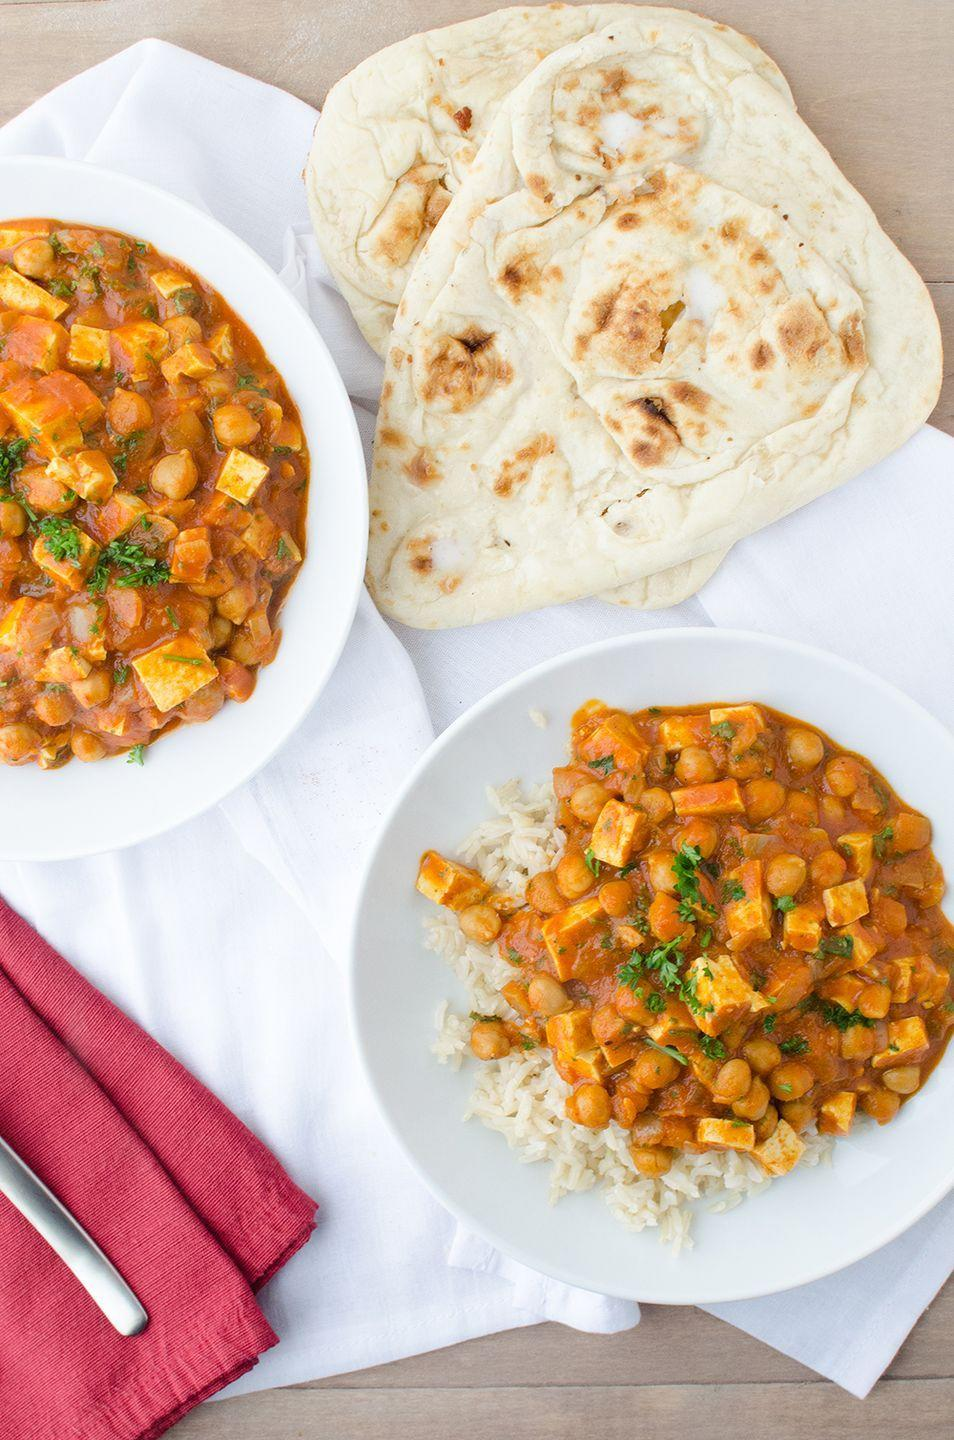 """<p>No chicken was harmed in the making of this dish.</p><p>Get the recipe from <a href=""""https://www.delishknowledge.com/slow-cooker-butter-chickpeas/"""" rel=""""nofollow noopener"""" target=""""_blank"""" data-ylk=""""slk:Delish Knowledge"""" class=""""link rapid-noclick-resp"""">Delish Knowledge</a>.</p>"""